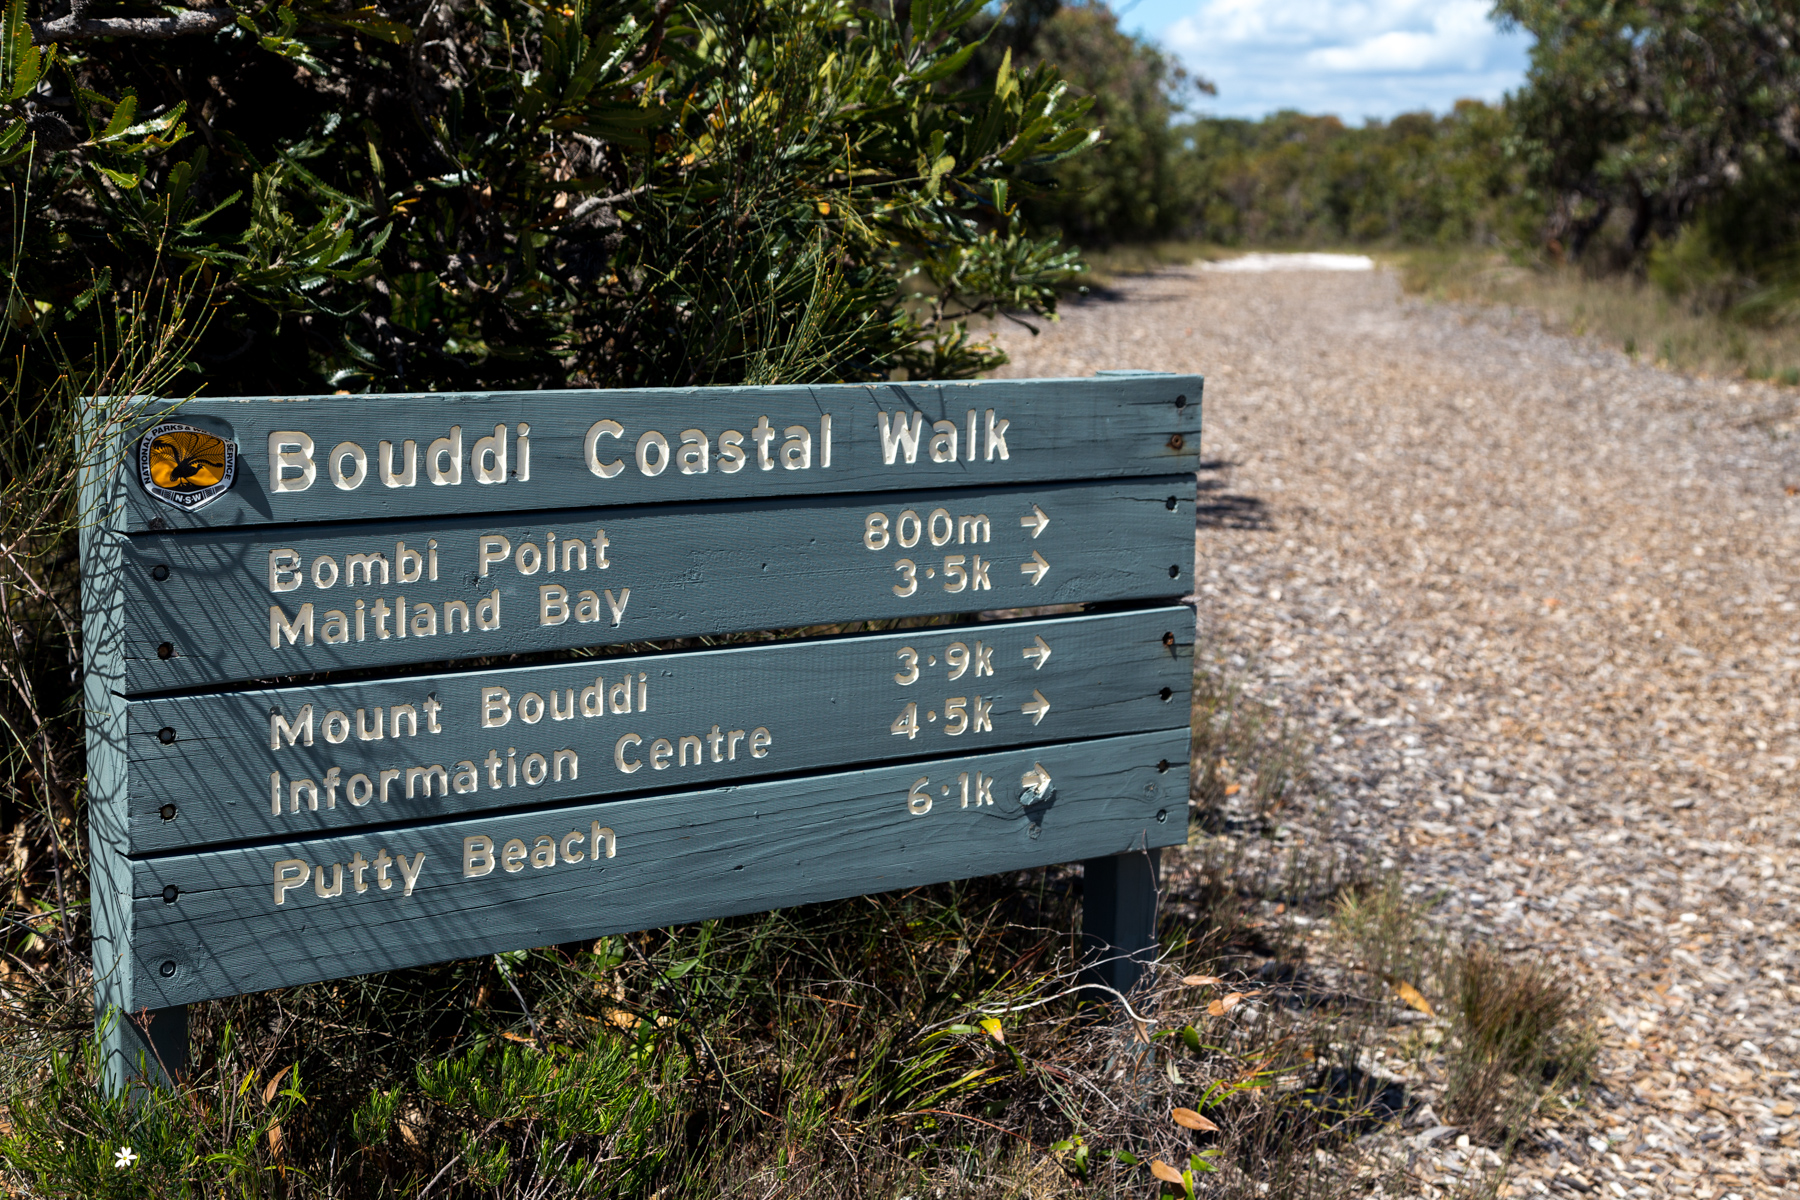 mg 6651 lr Guide to Bouddi National Park